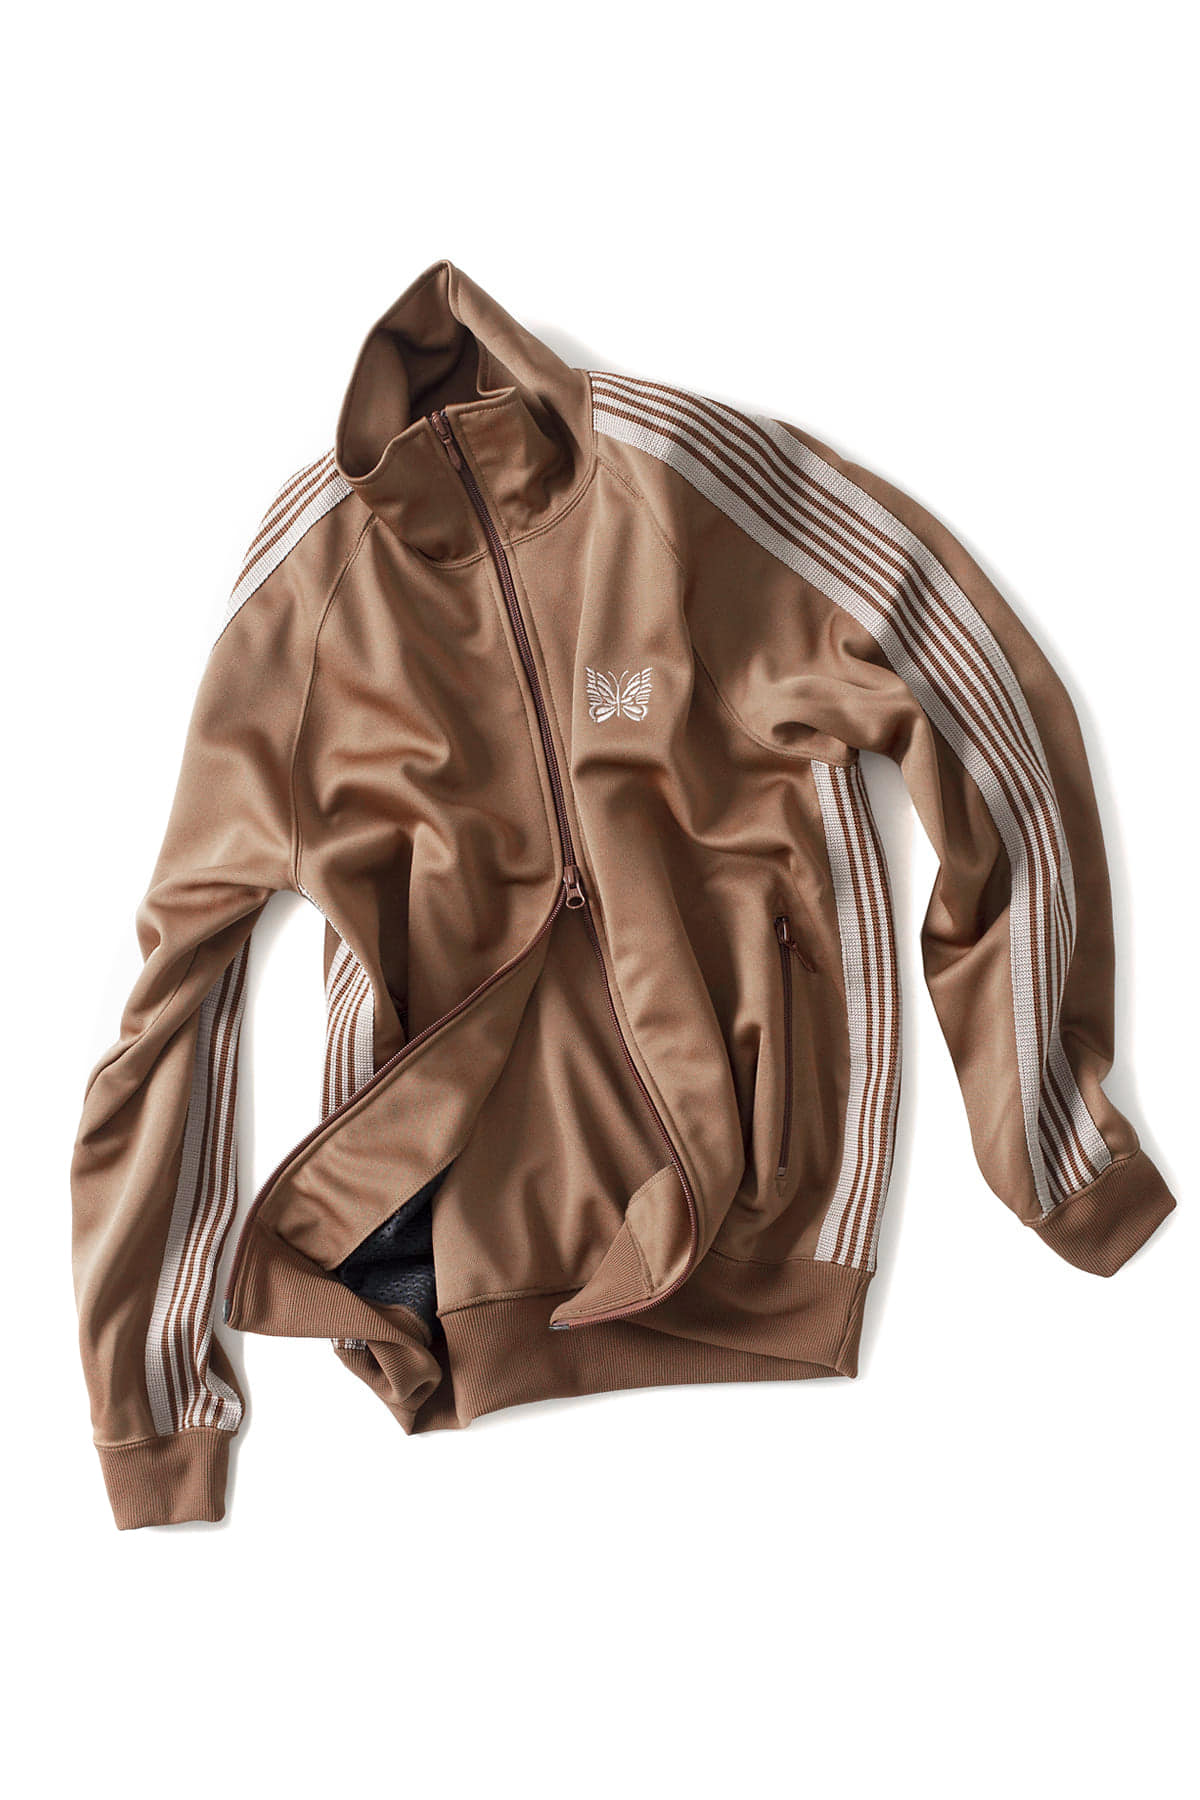 NEEDLES : Track Jacket (Brown)